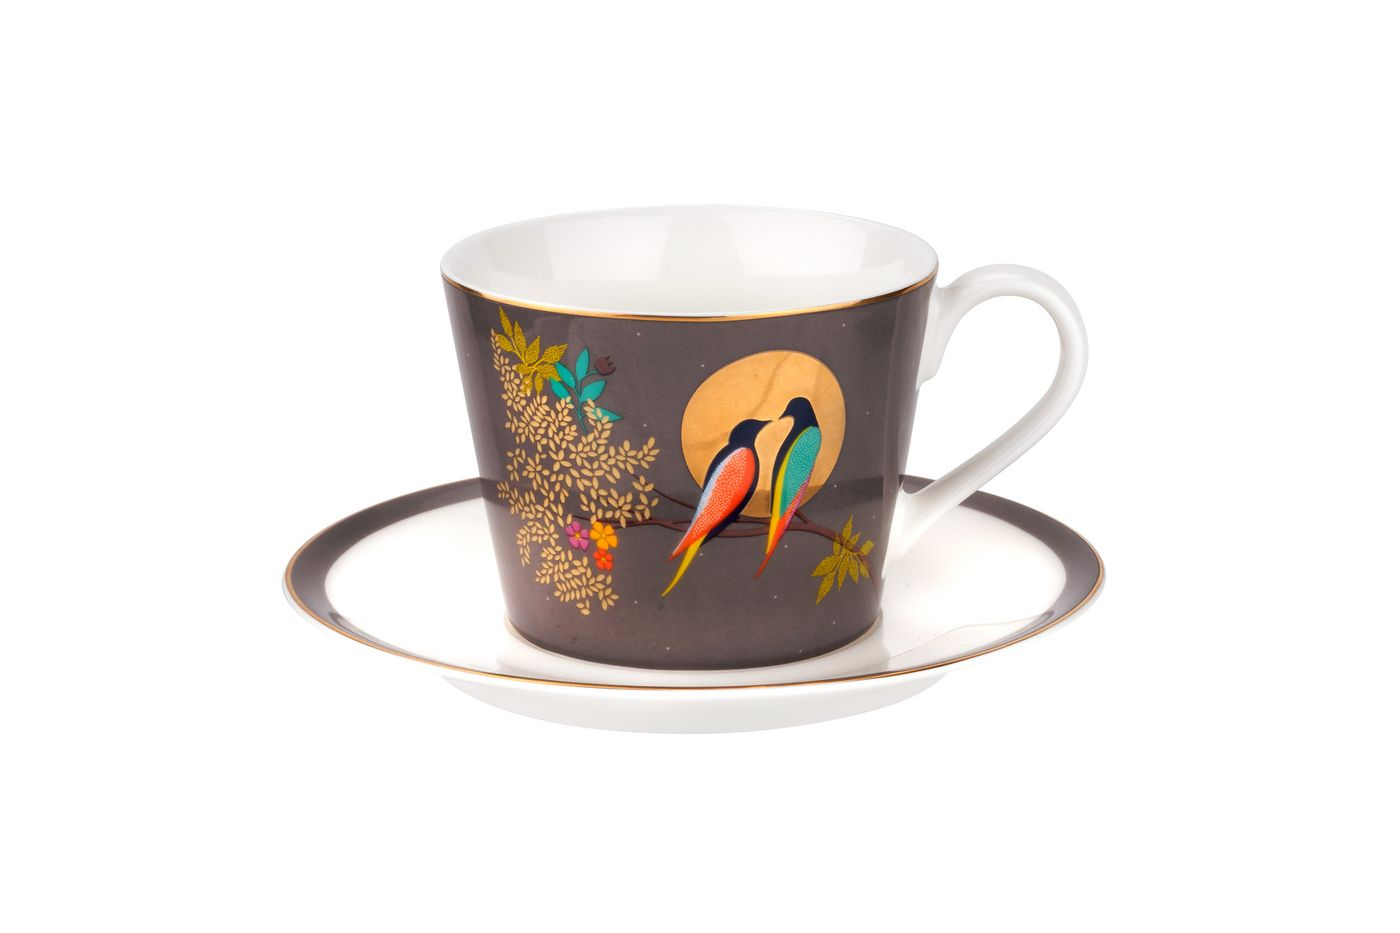 Sara Miller London for Portmeirion Chelsea Collection Teacup & Saucer Dark Grey 0.2l thumb 1